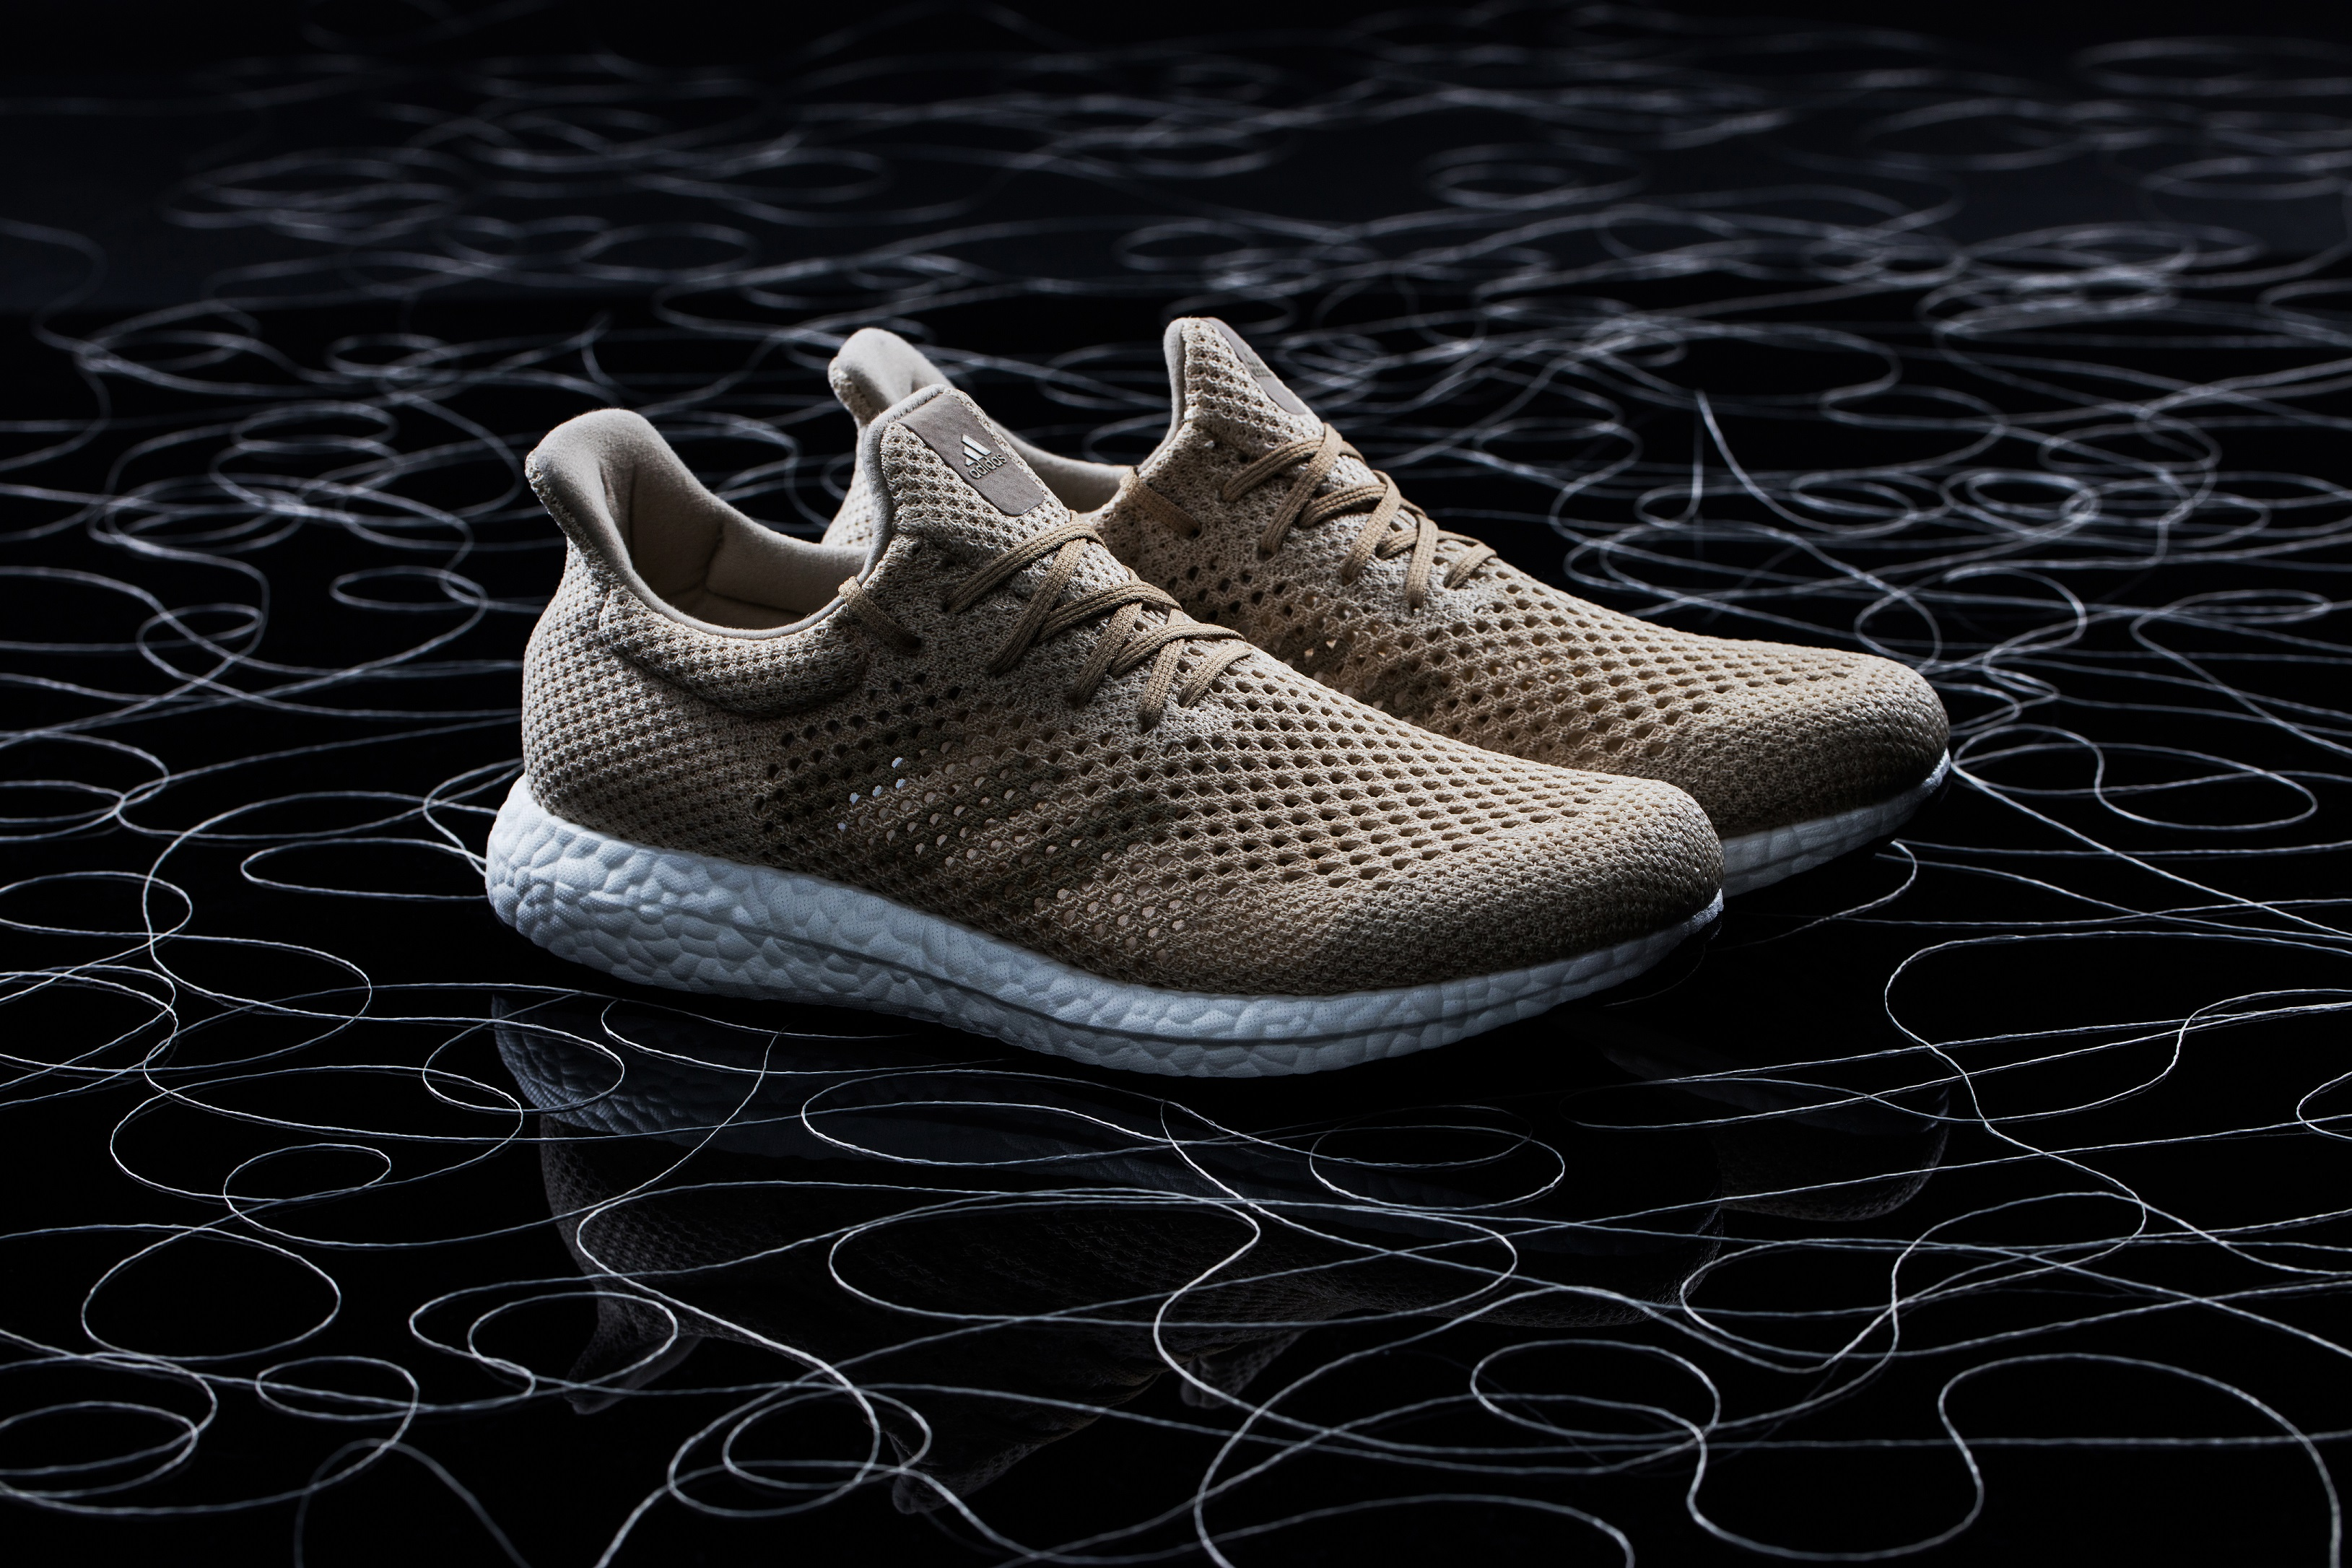 A BIODEGRADABLE SPORTS SHOE FROM ADIDAS